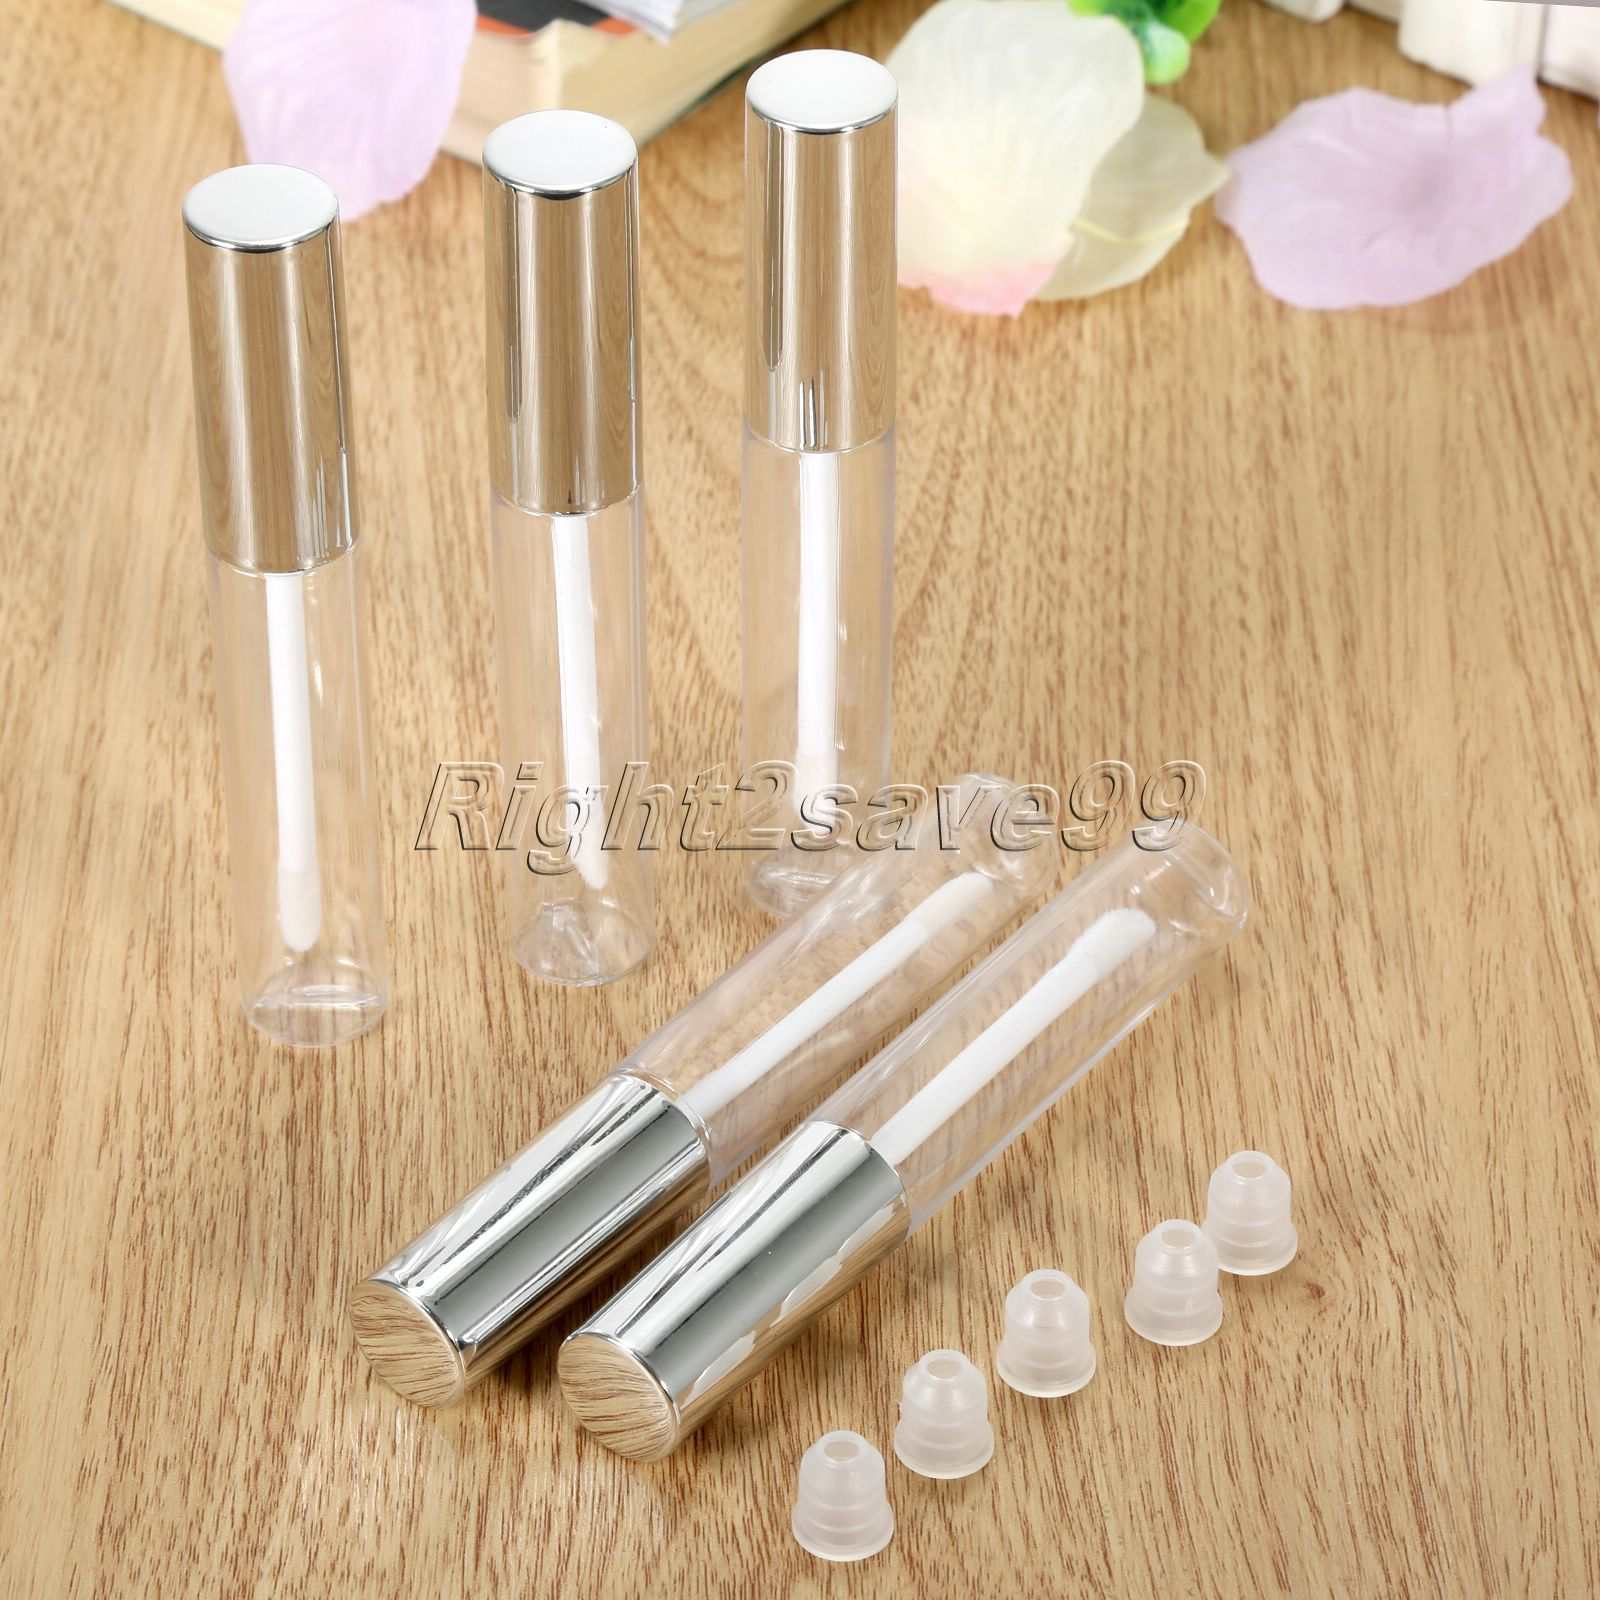 New Arrival 5pcs 10ml Lip Cute Bottle Empty Cosmetic Container Tube Travel Gloss Pretty Empty Clear Lip Containers For Makeup